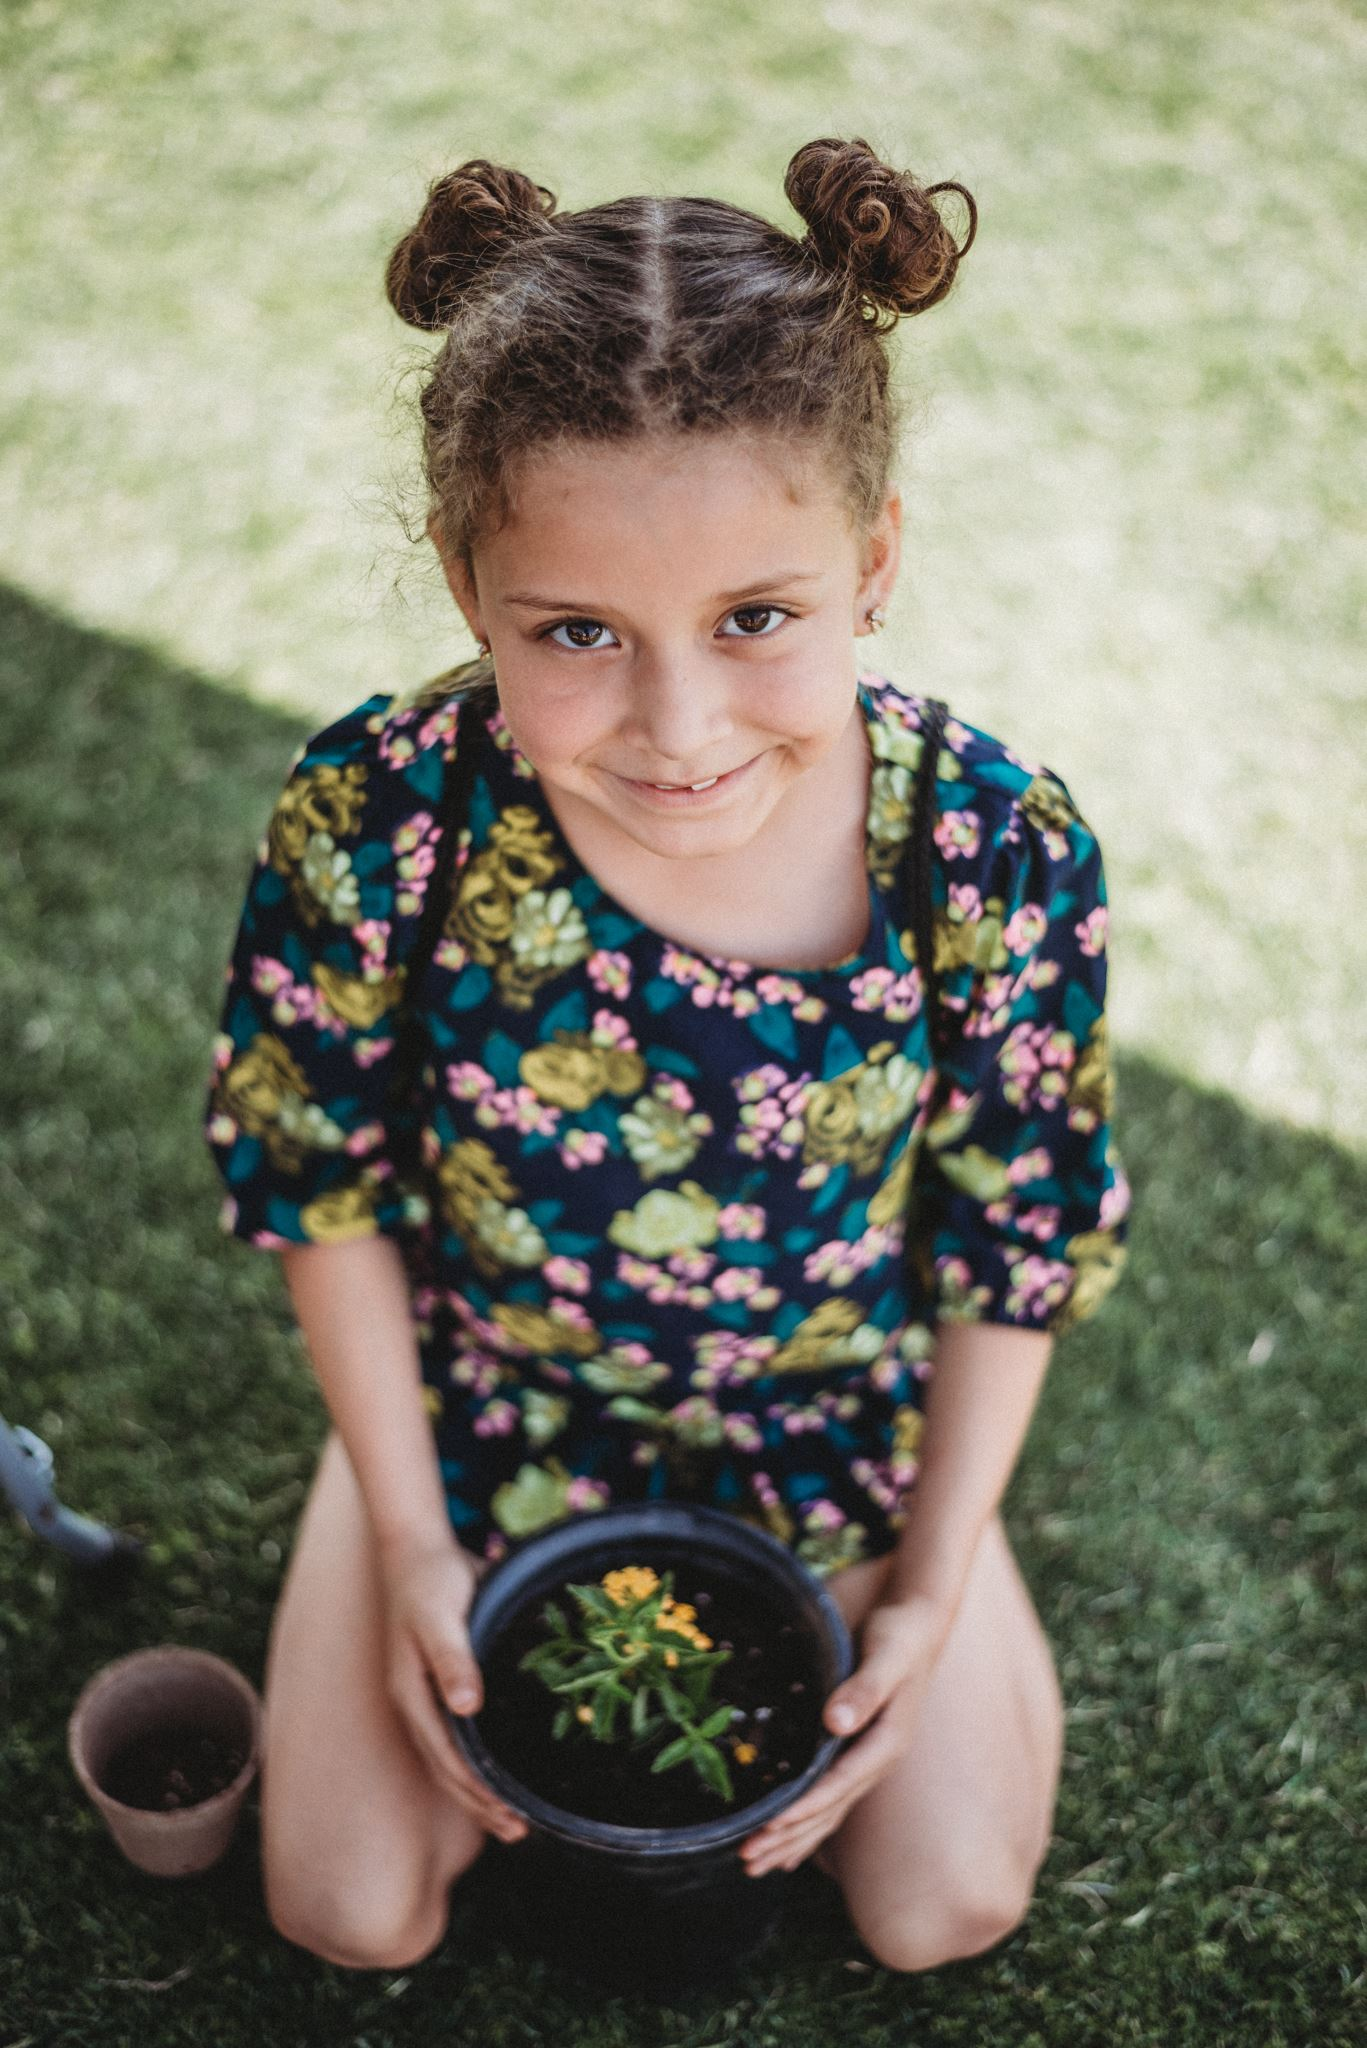 Young Girl Wearing a Floral Pattern Holding a Potted Flower